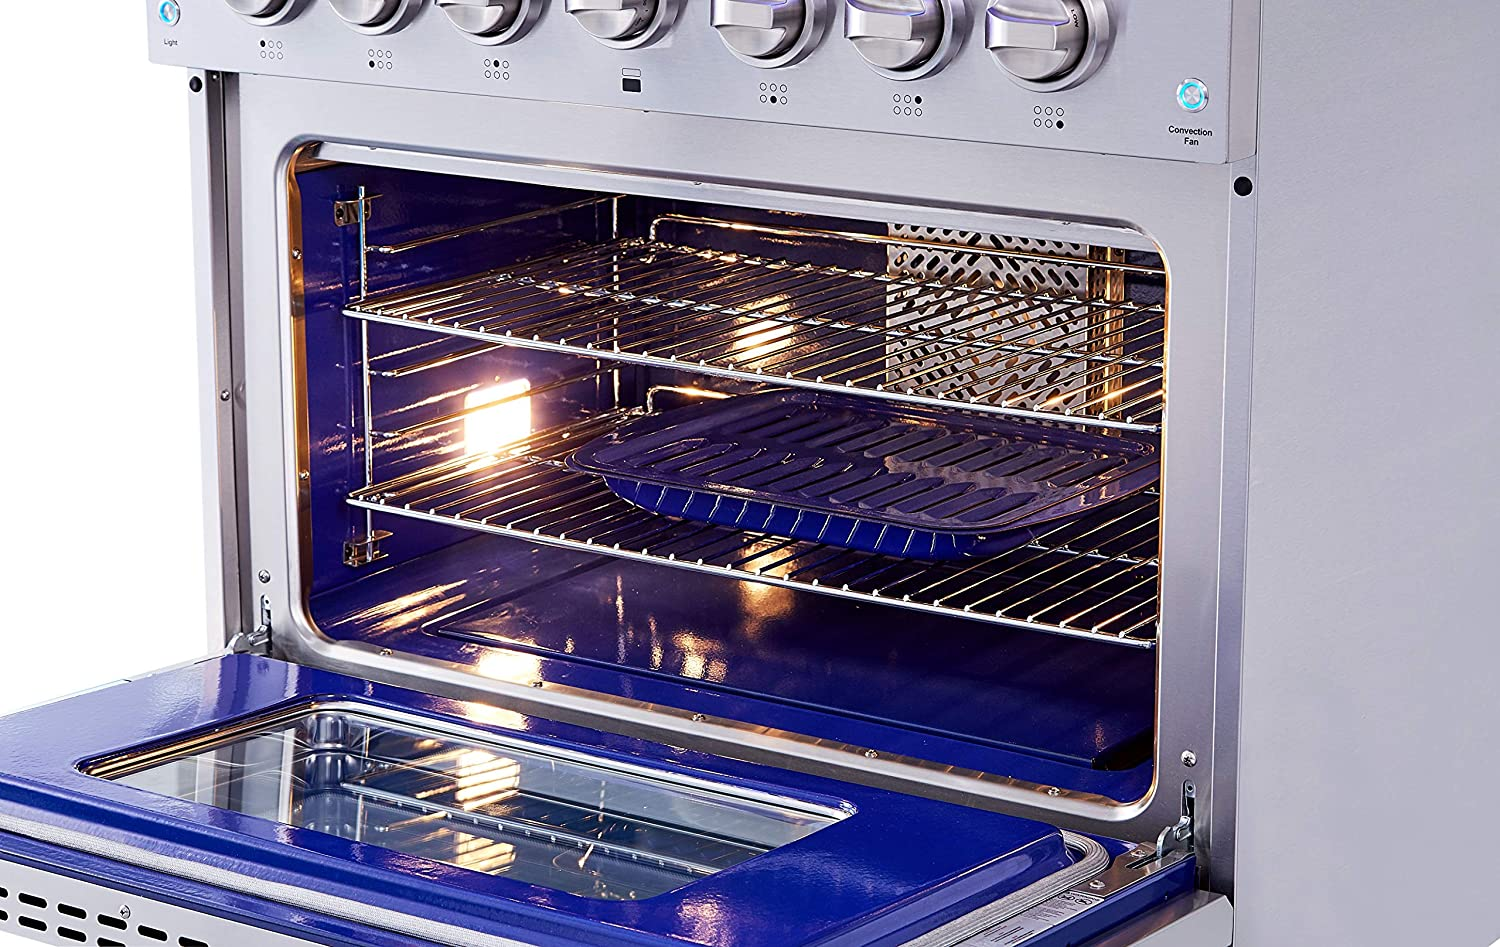 6 Burners Ft Convection Fan In Stainless Steel Cast Iron Grates Blue Porcelain Oven Interior Thor Kitchen HRG3618U 36 Freestanding Professional Style Gas Range with 5.2 Cu Oven